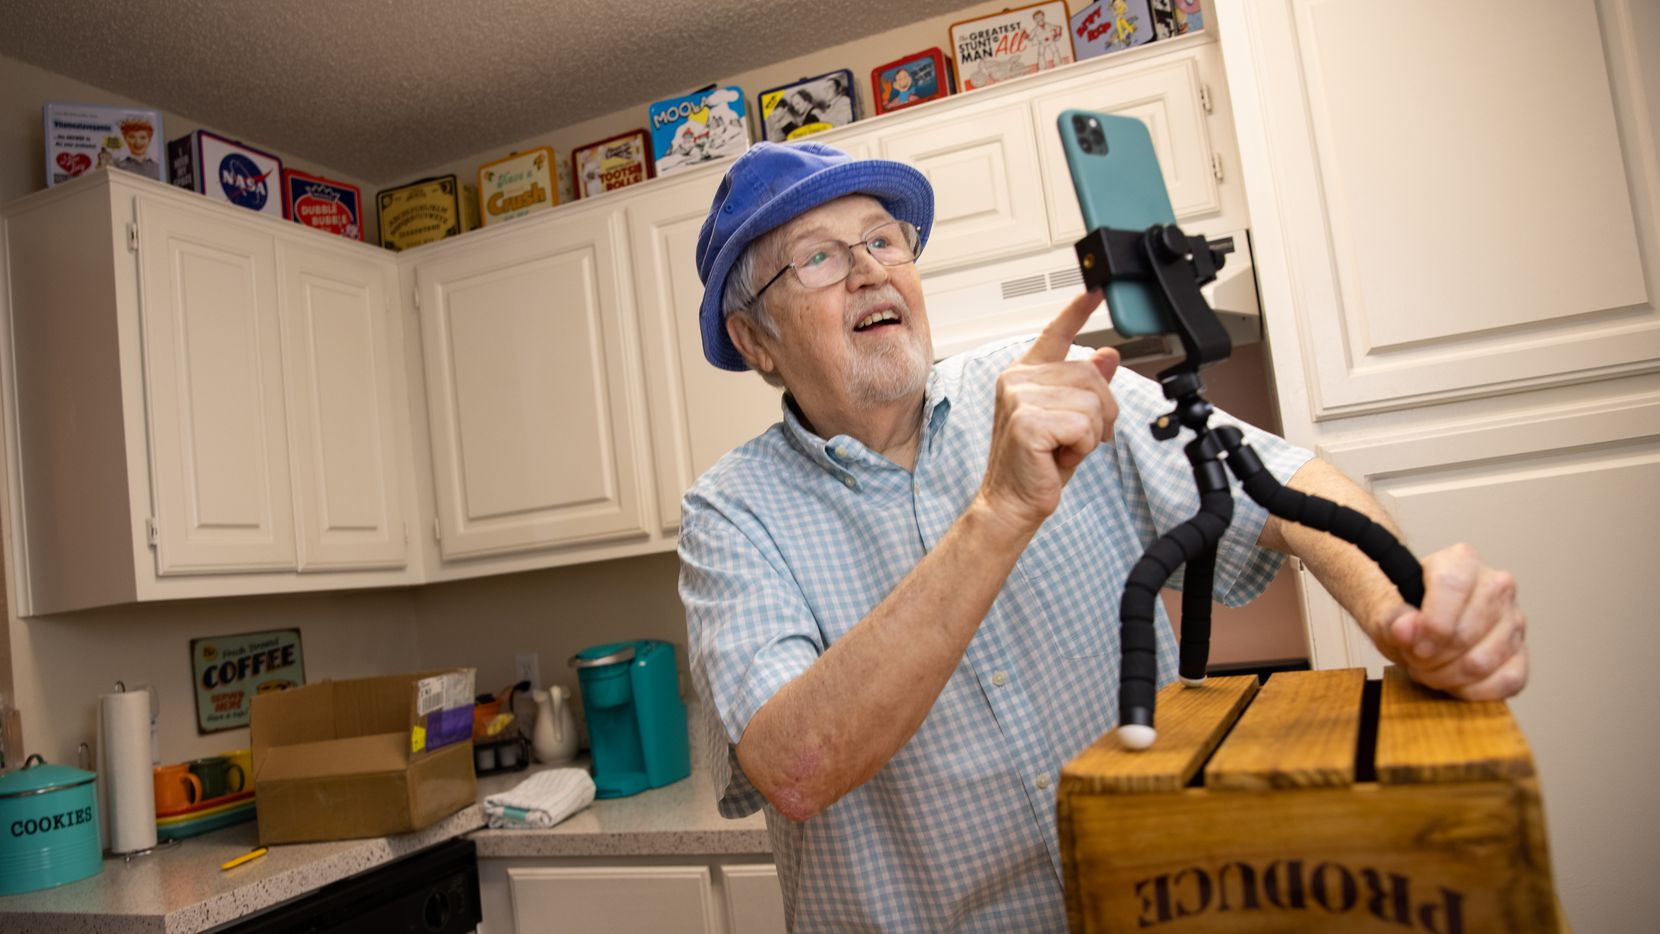 Steve Austin, a.k.a. Old Man Steve on TikTok, sets up his phone to make a video for 1.4 million followers. He posts two to four times a day from his Richland Hills apartment.